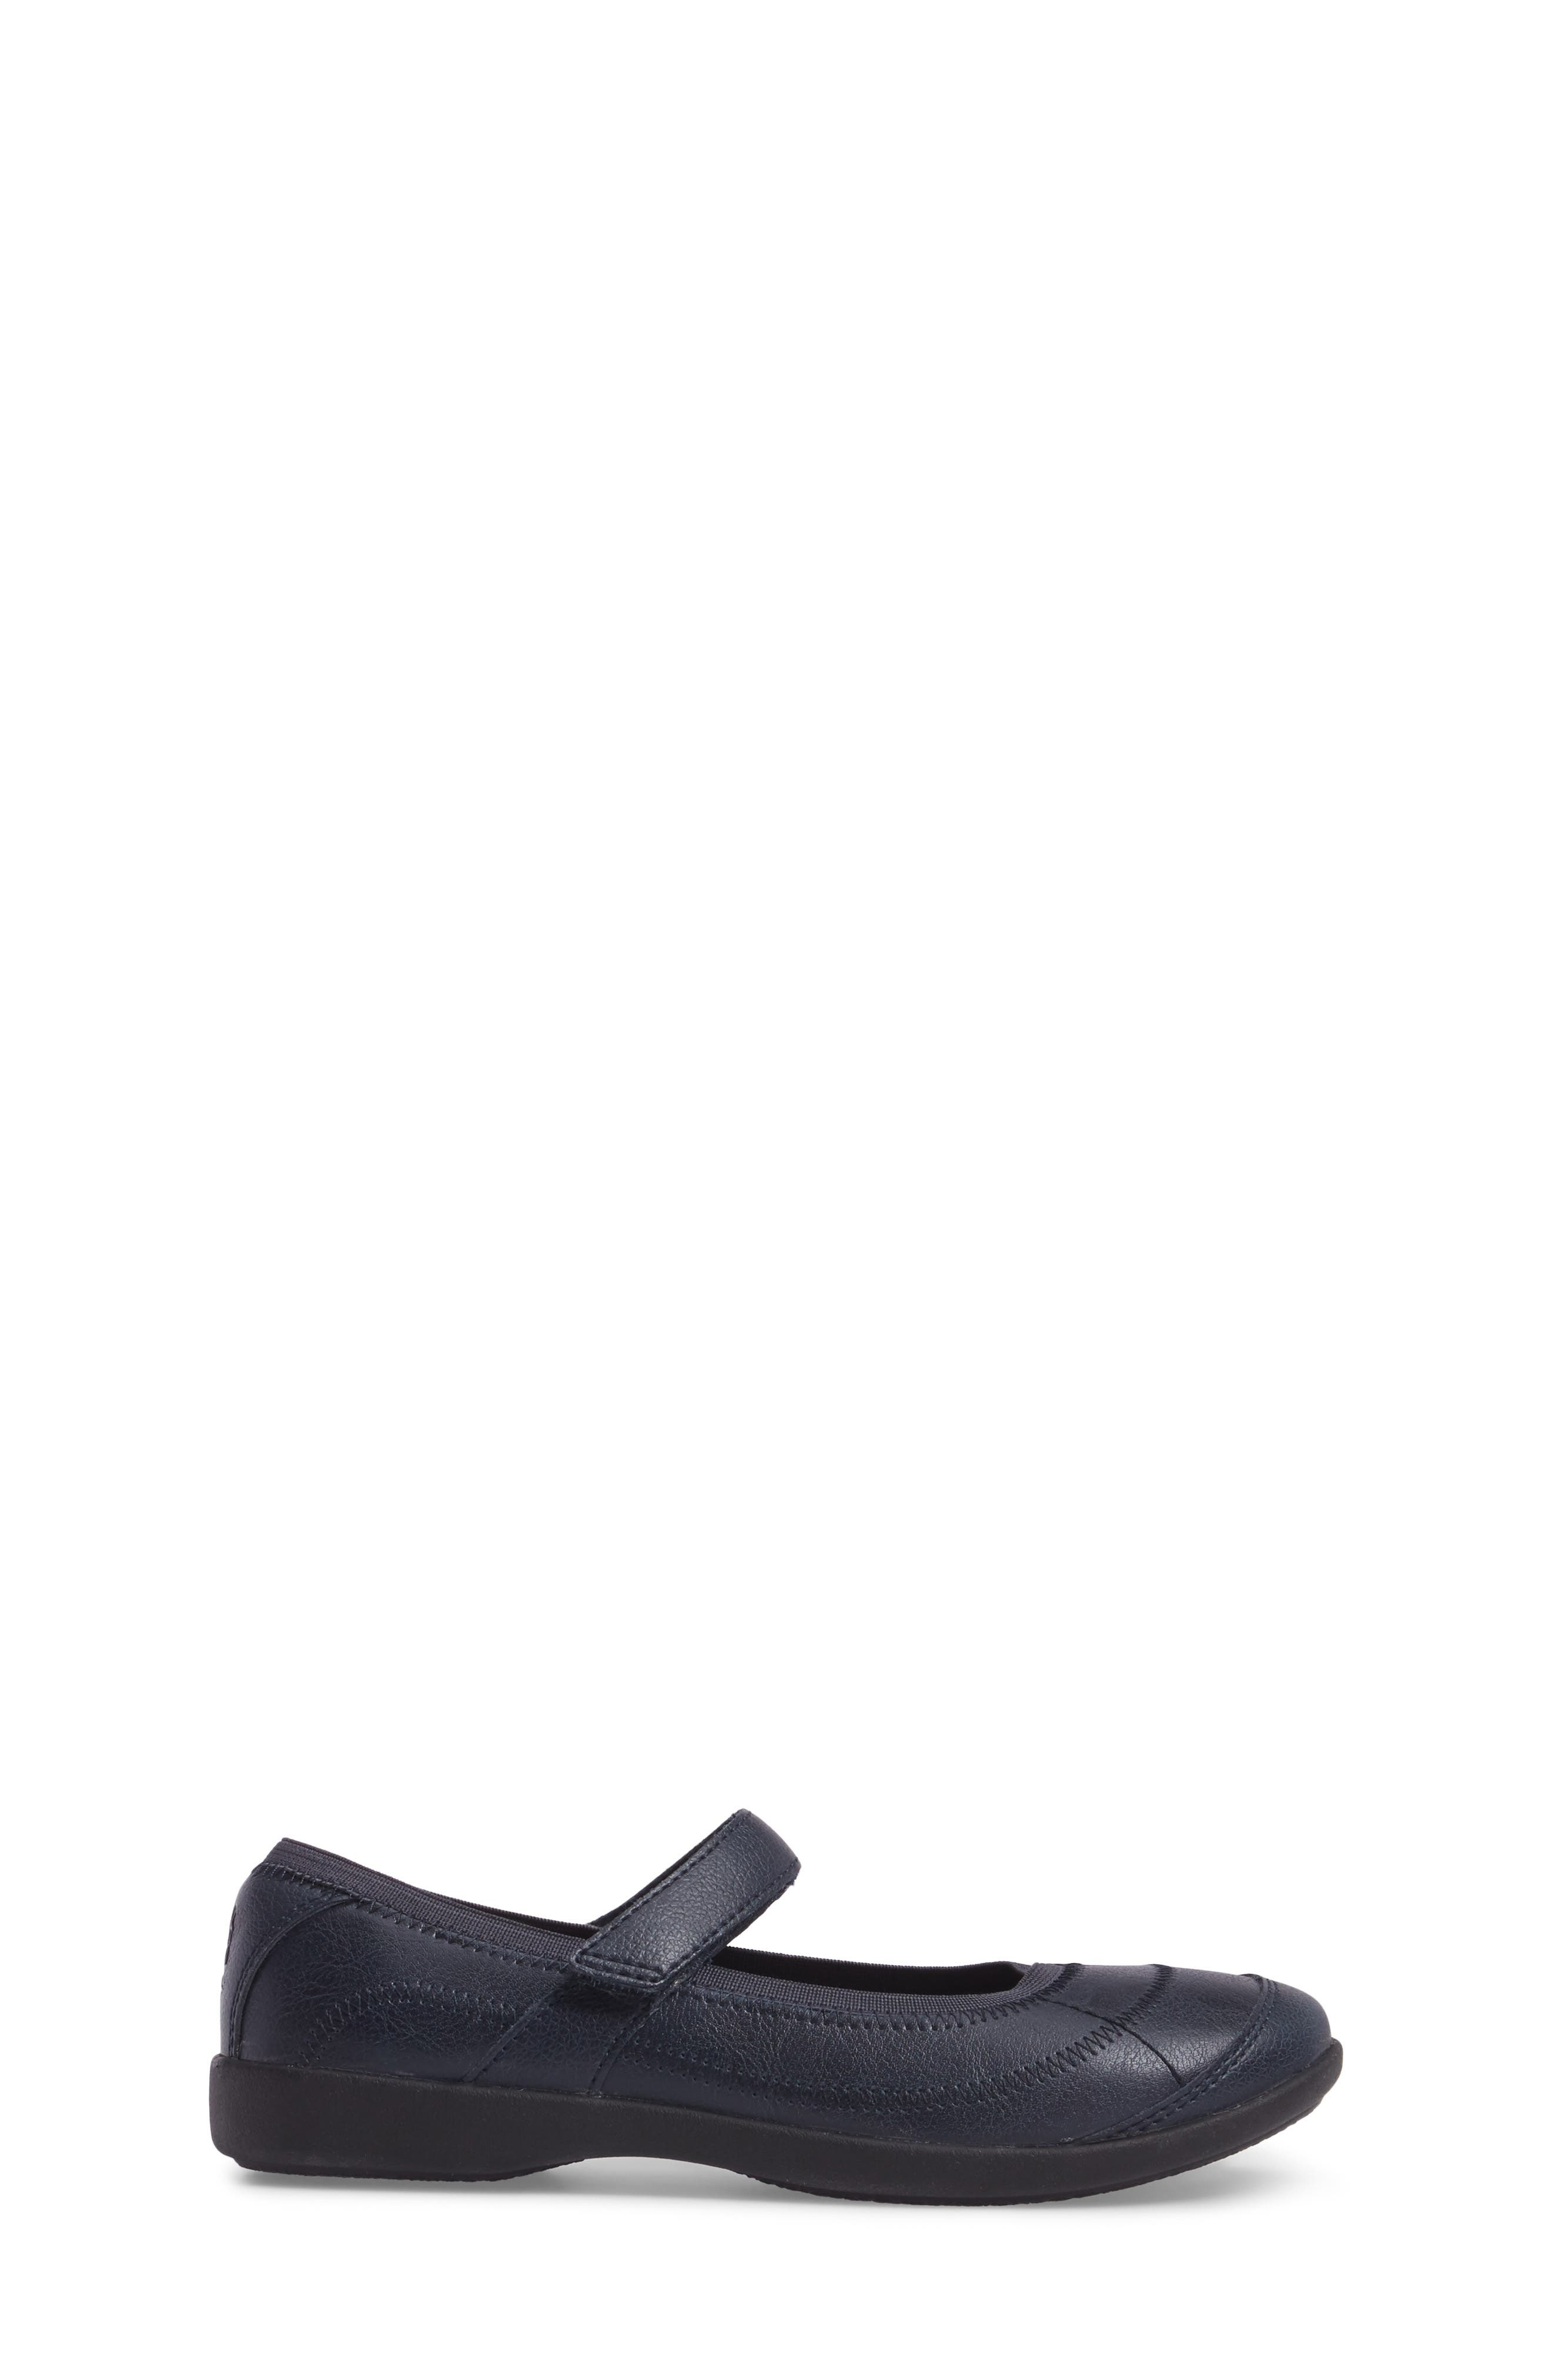 Reese Mary Jane Flat,                             Alternate thumbnail 3, color,                             NAVY LEATHER